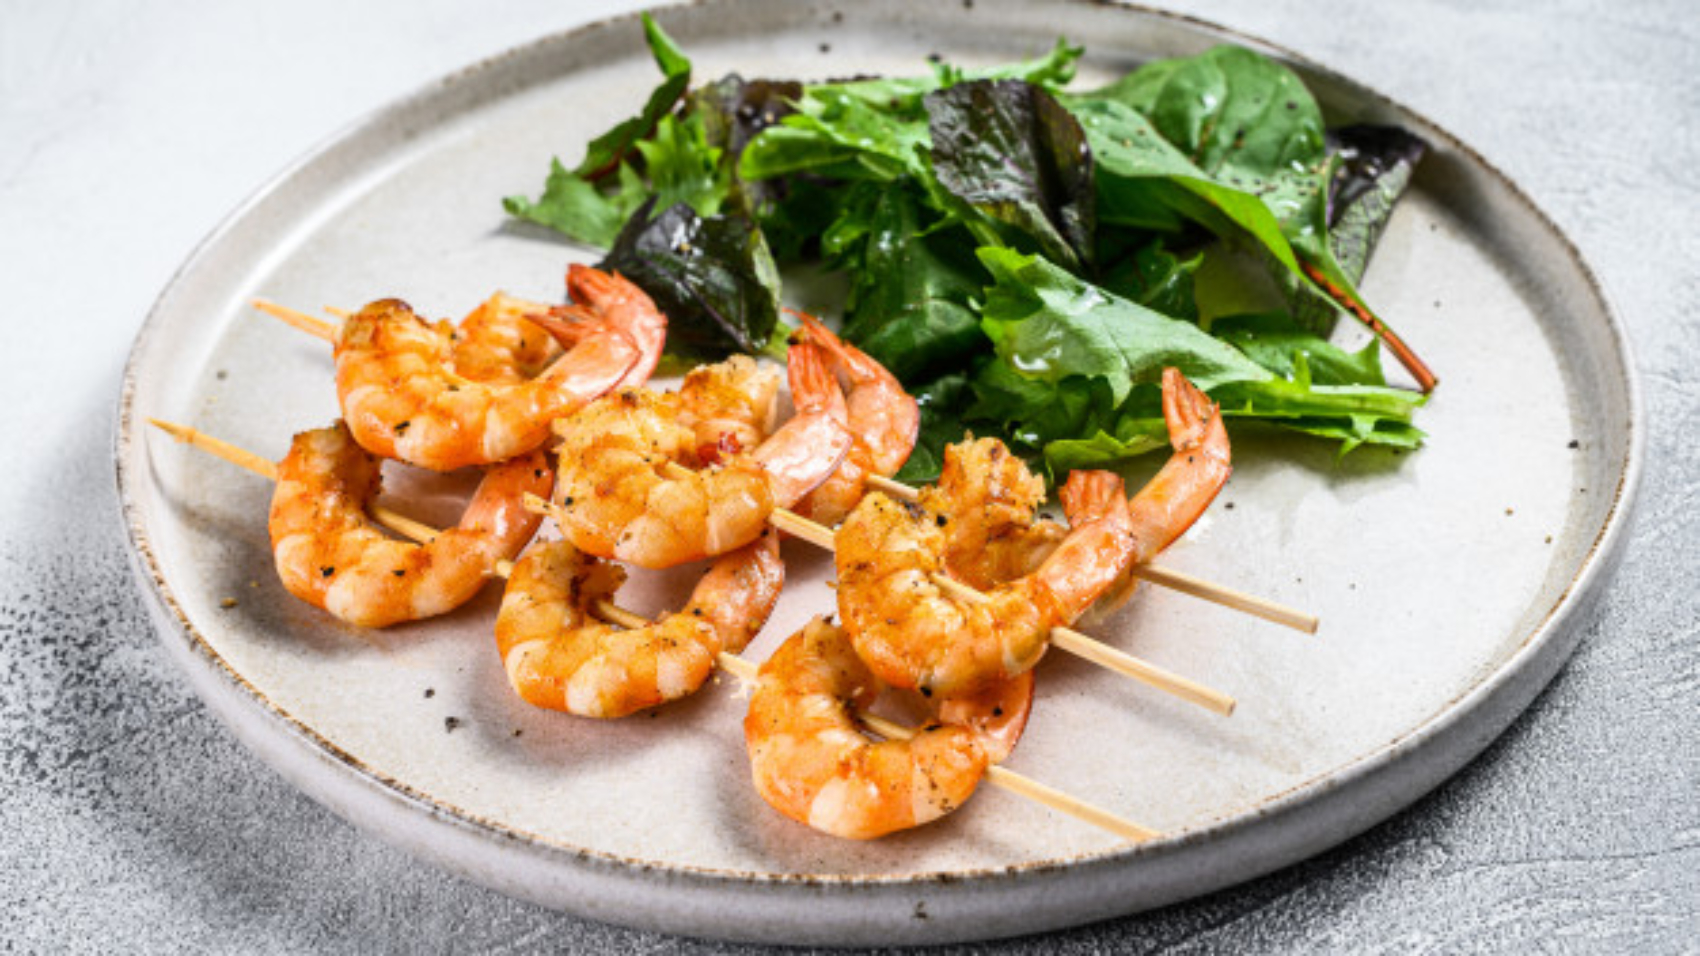 roasted-shrimps-prawns-skewers-with-spinach-salad_89816-7772